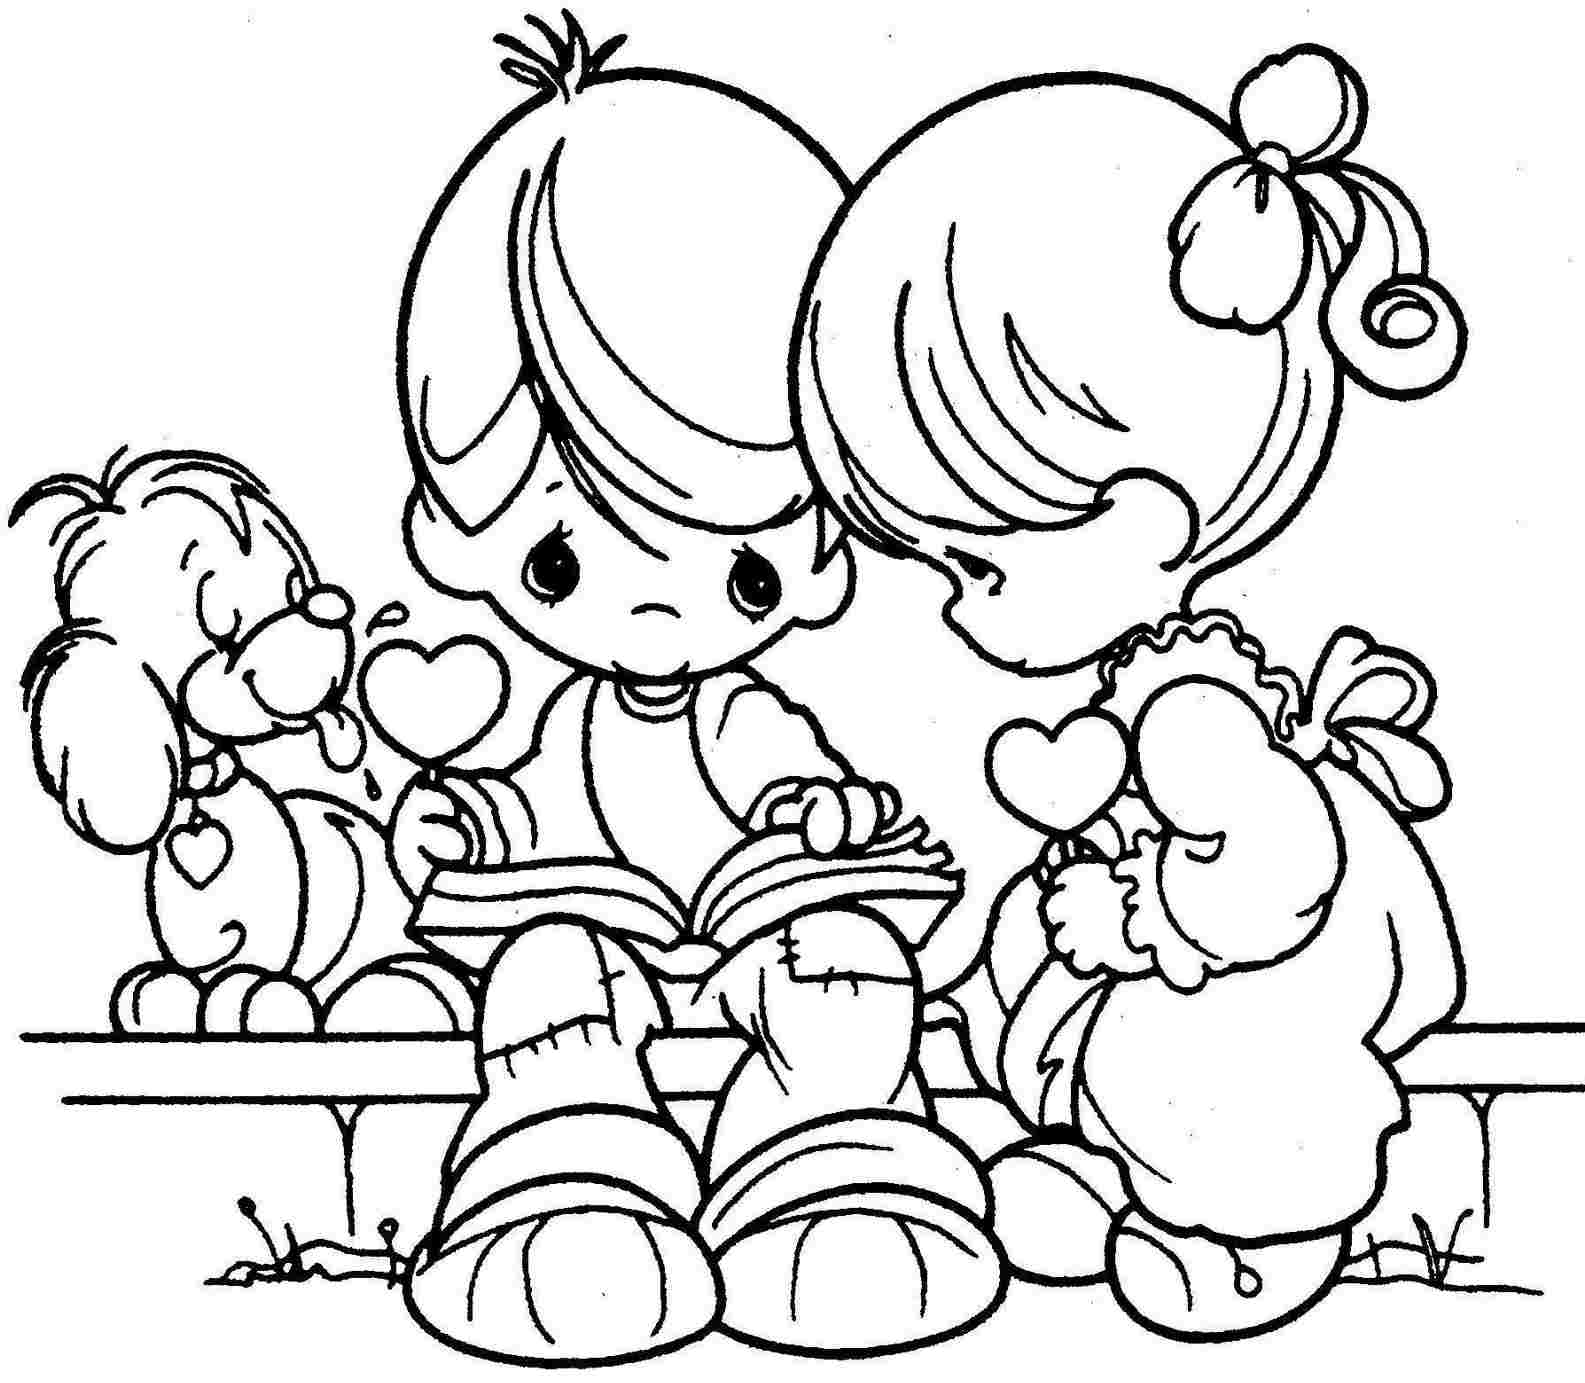 Adult Best Christian Valentines Day Coloring Pages Images top free valentine coloring pictures to print off valentines day pages for kids images